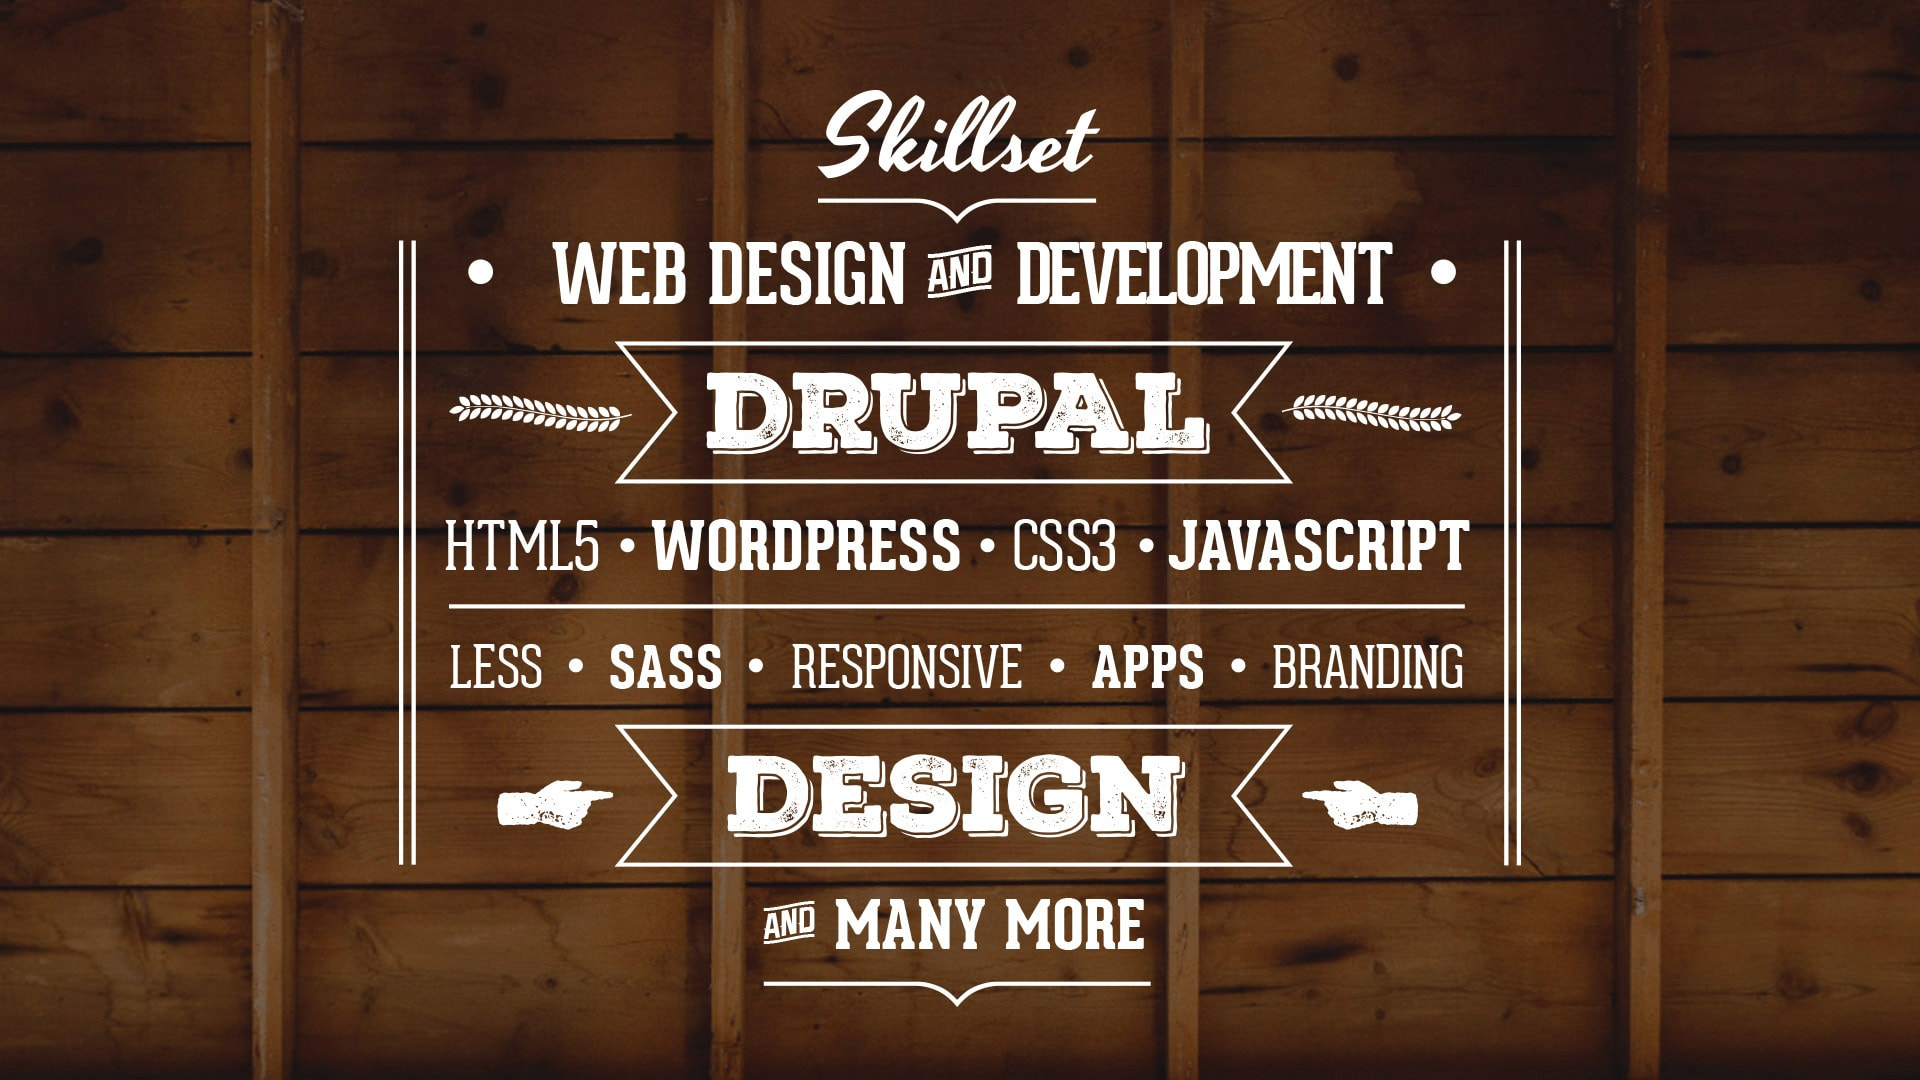 Skillset, Web Design, Web Development, Drupal, Wordpress, HTML, CSS, Branding